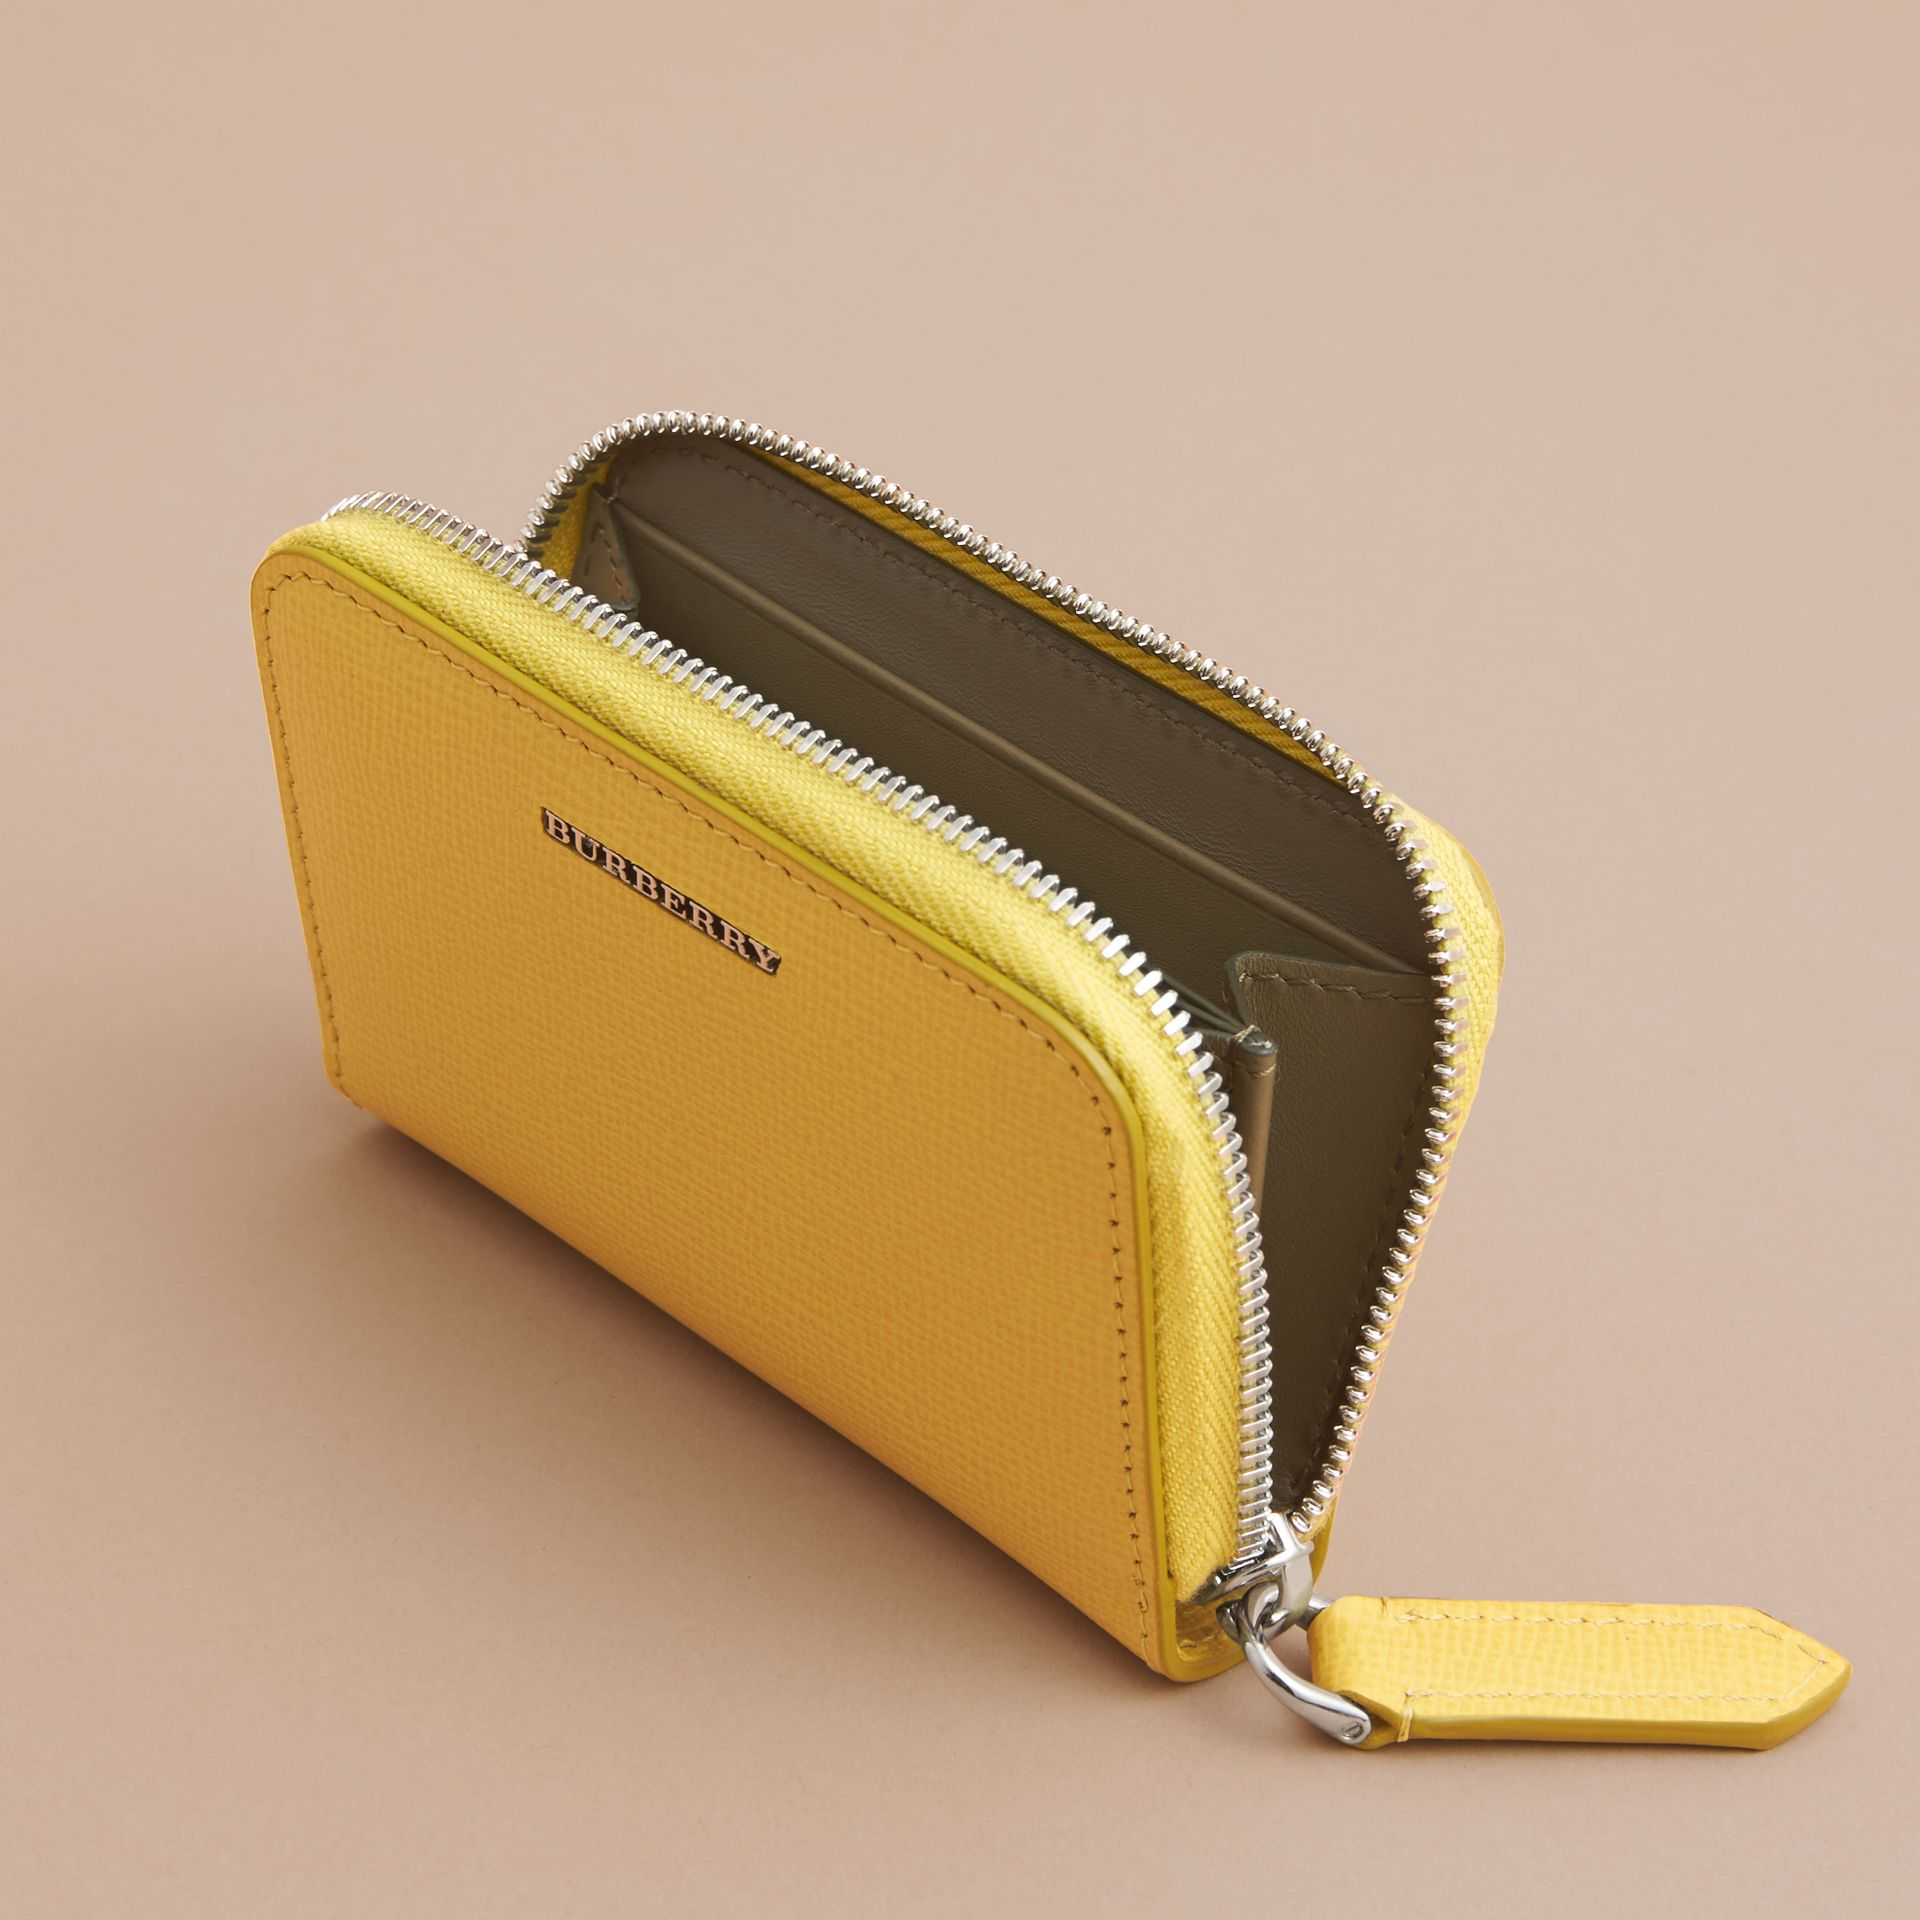 London Leather Ziparound Coin Case in Bright Citrus | Burberry Canada - gallery image 5